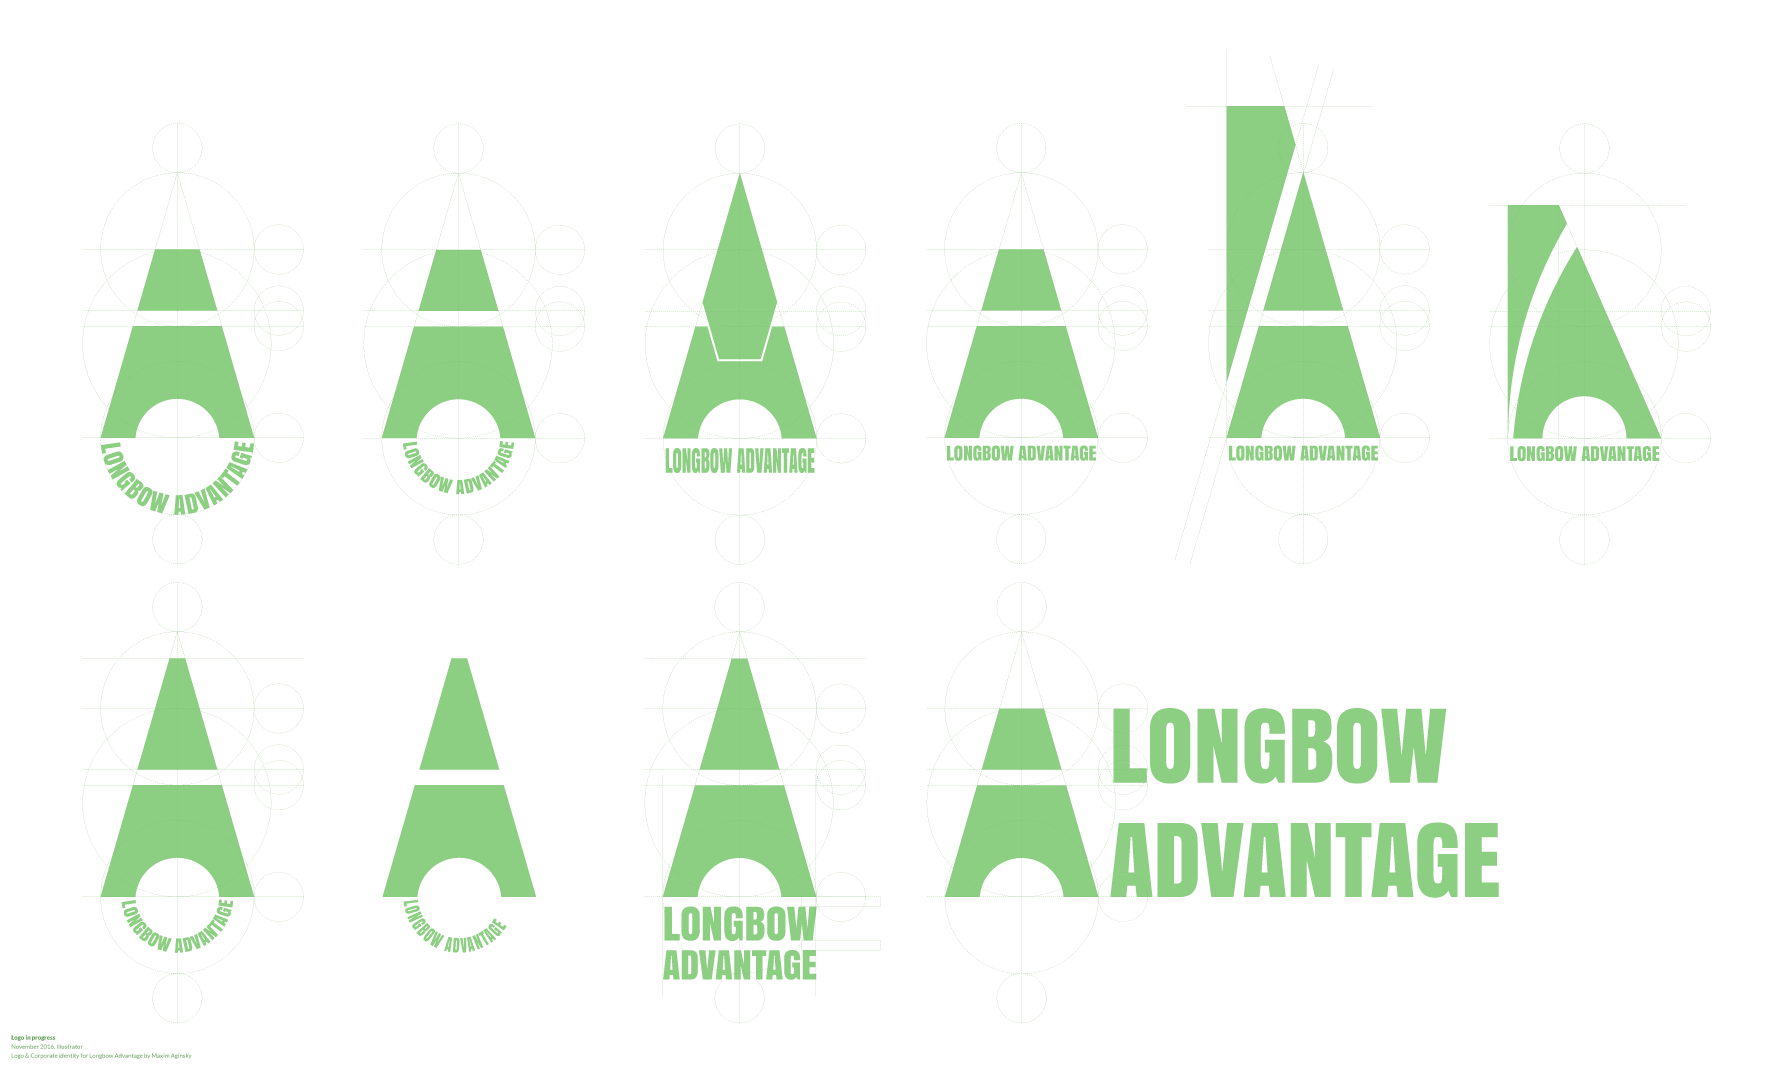 Longbow Advantage logo in progress examples